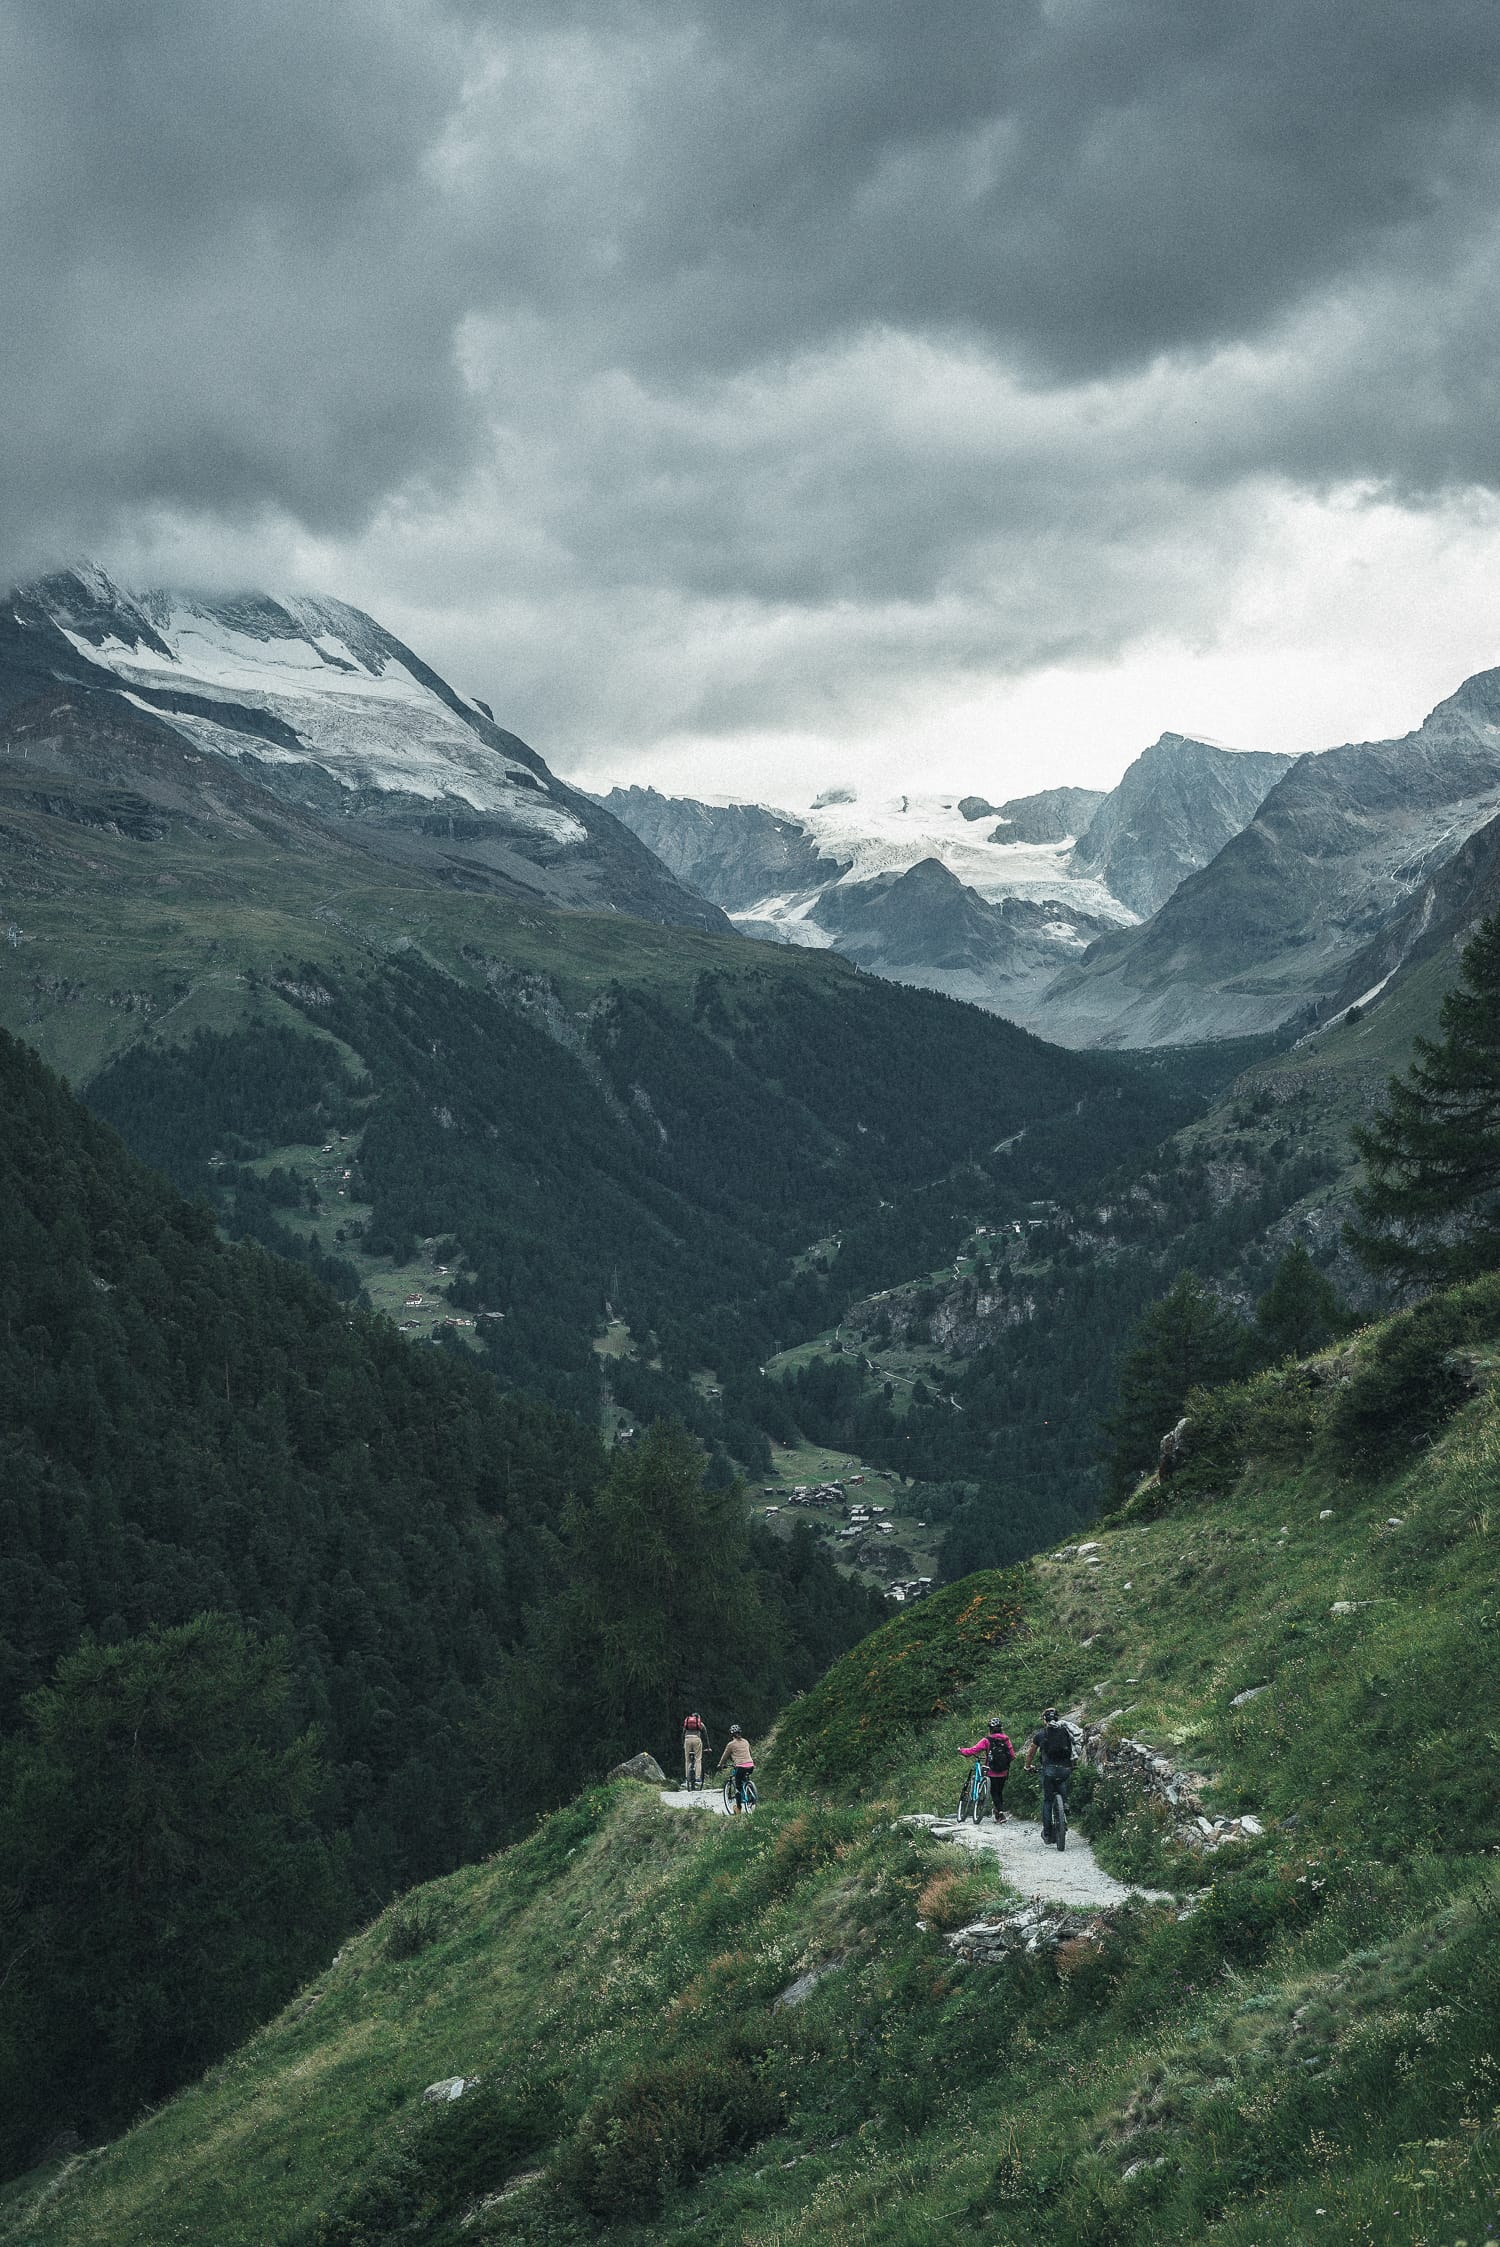 People riding mountain bikes in the Swiss mountains